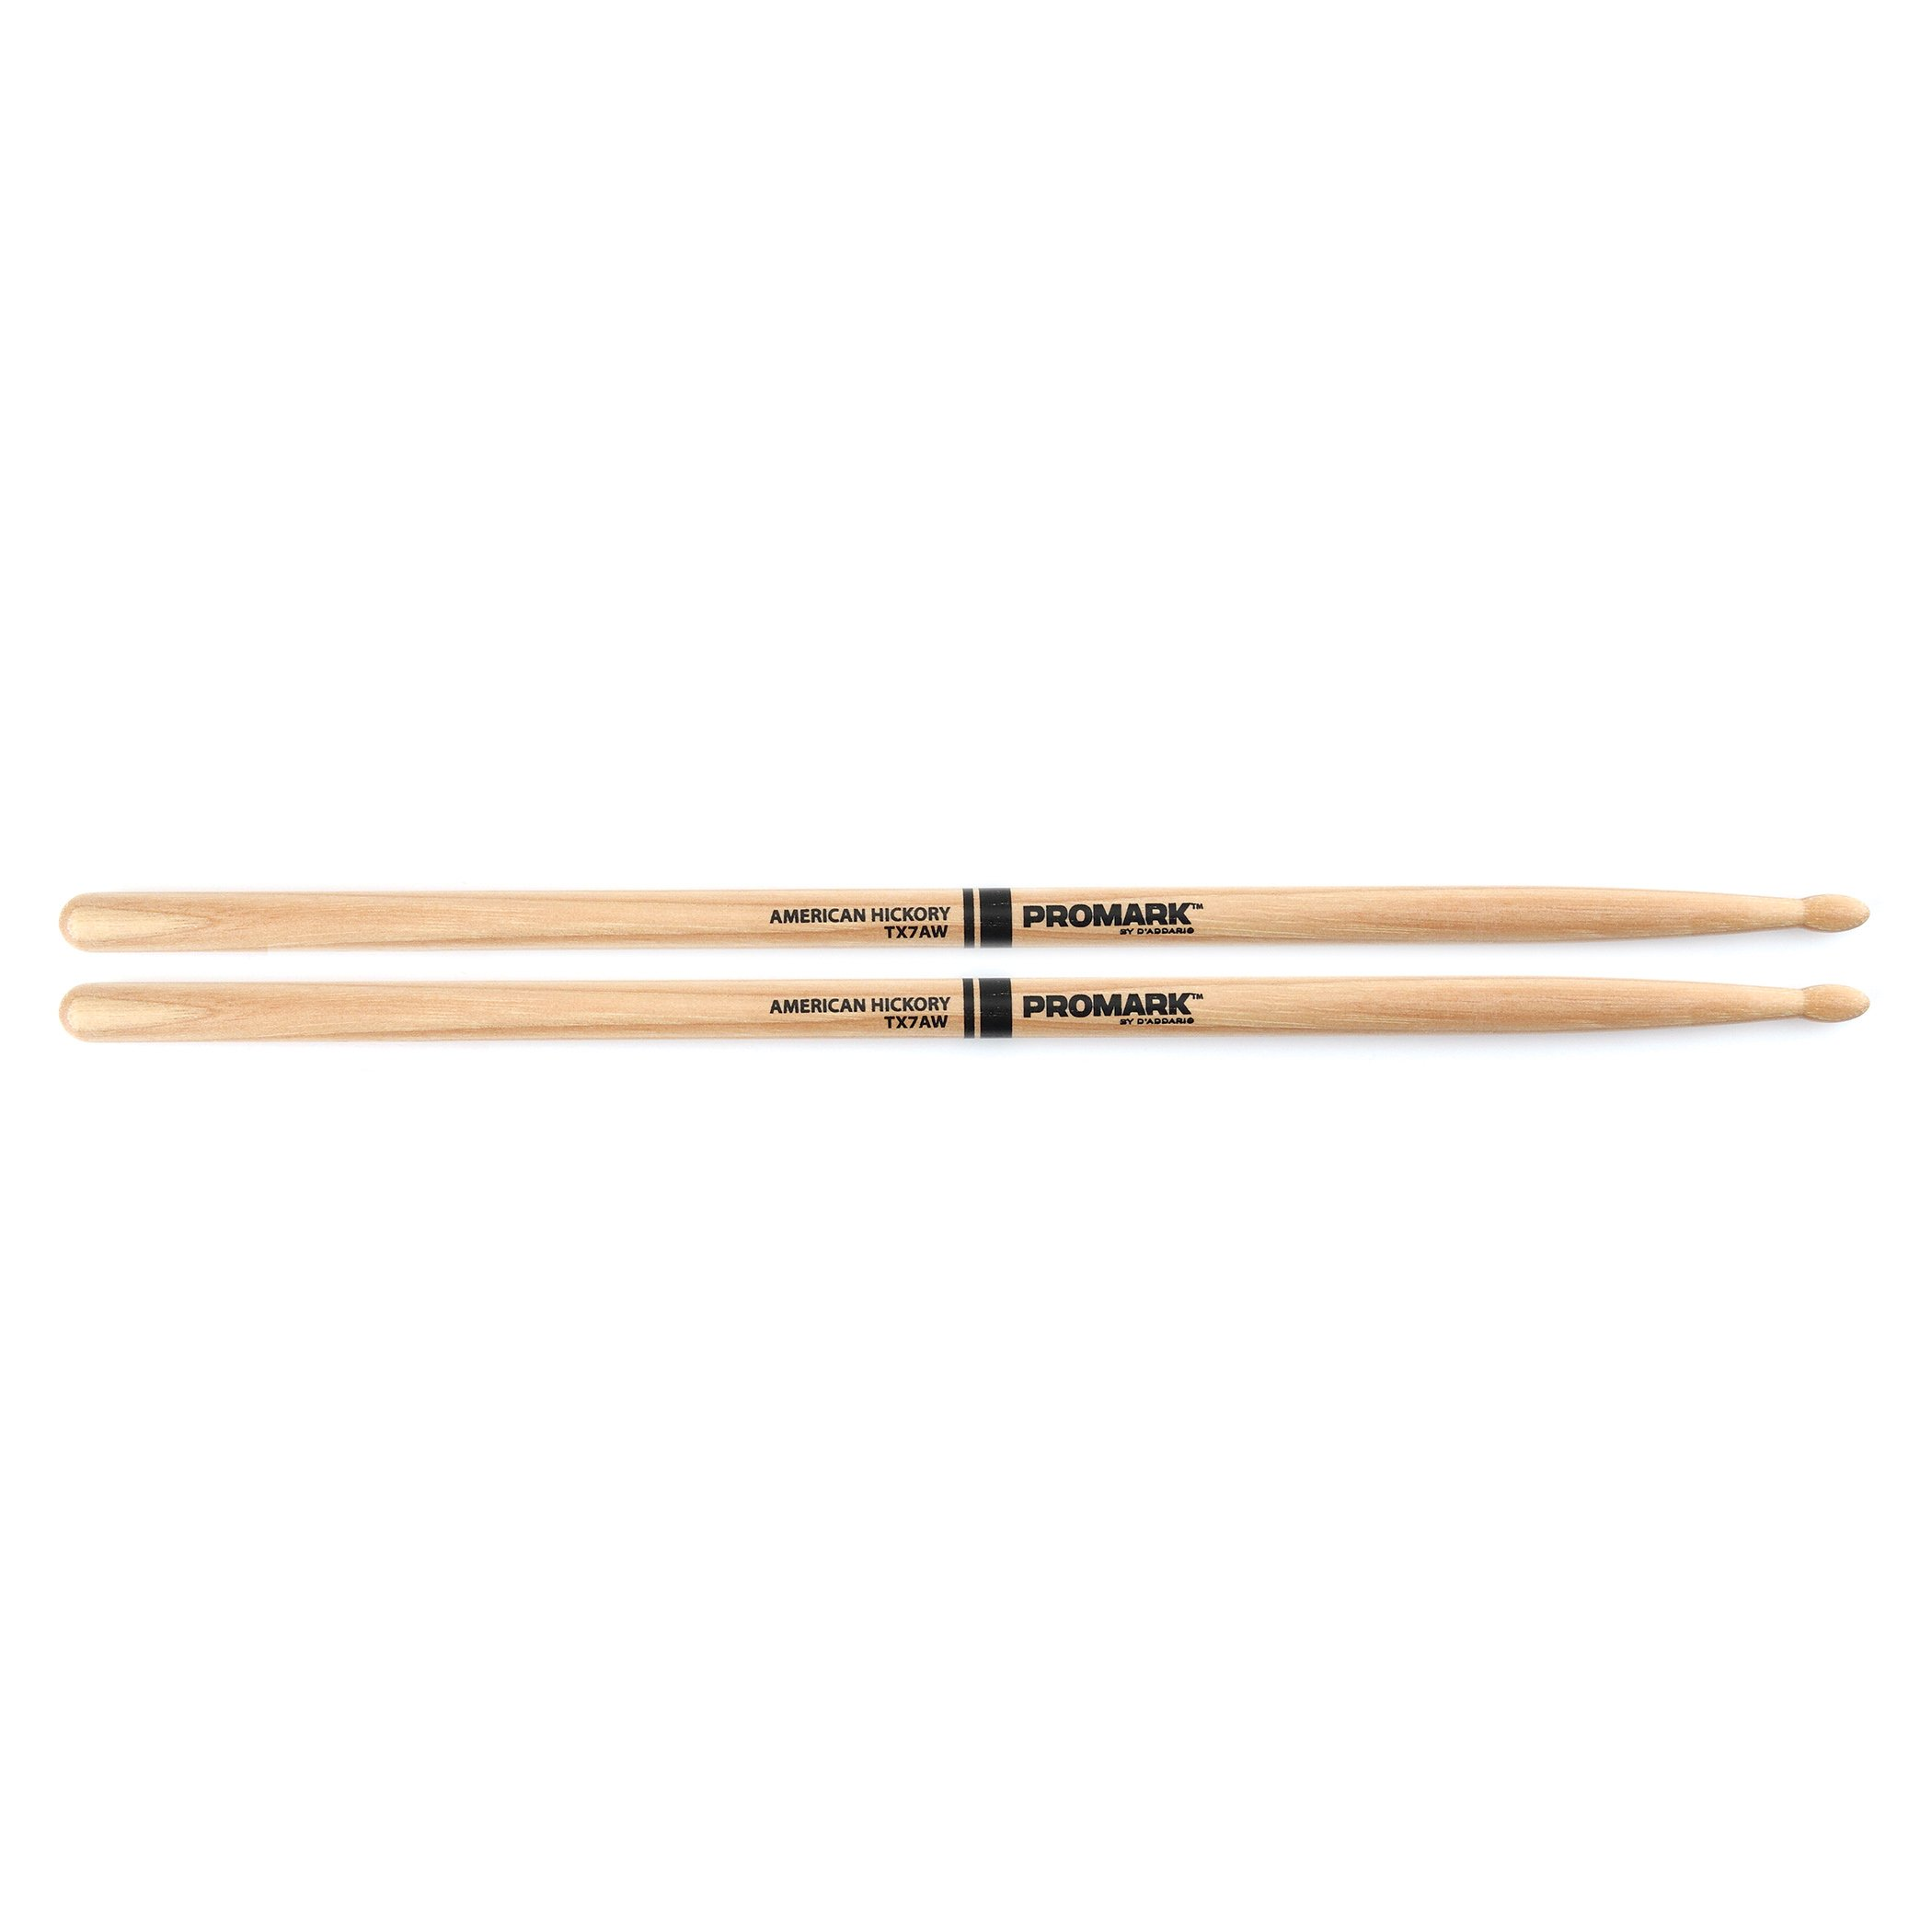 Promark American Hickory Classic 7A Drumsticks, Oval Tip, Single Pair